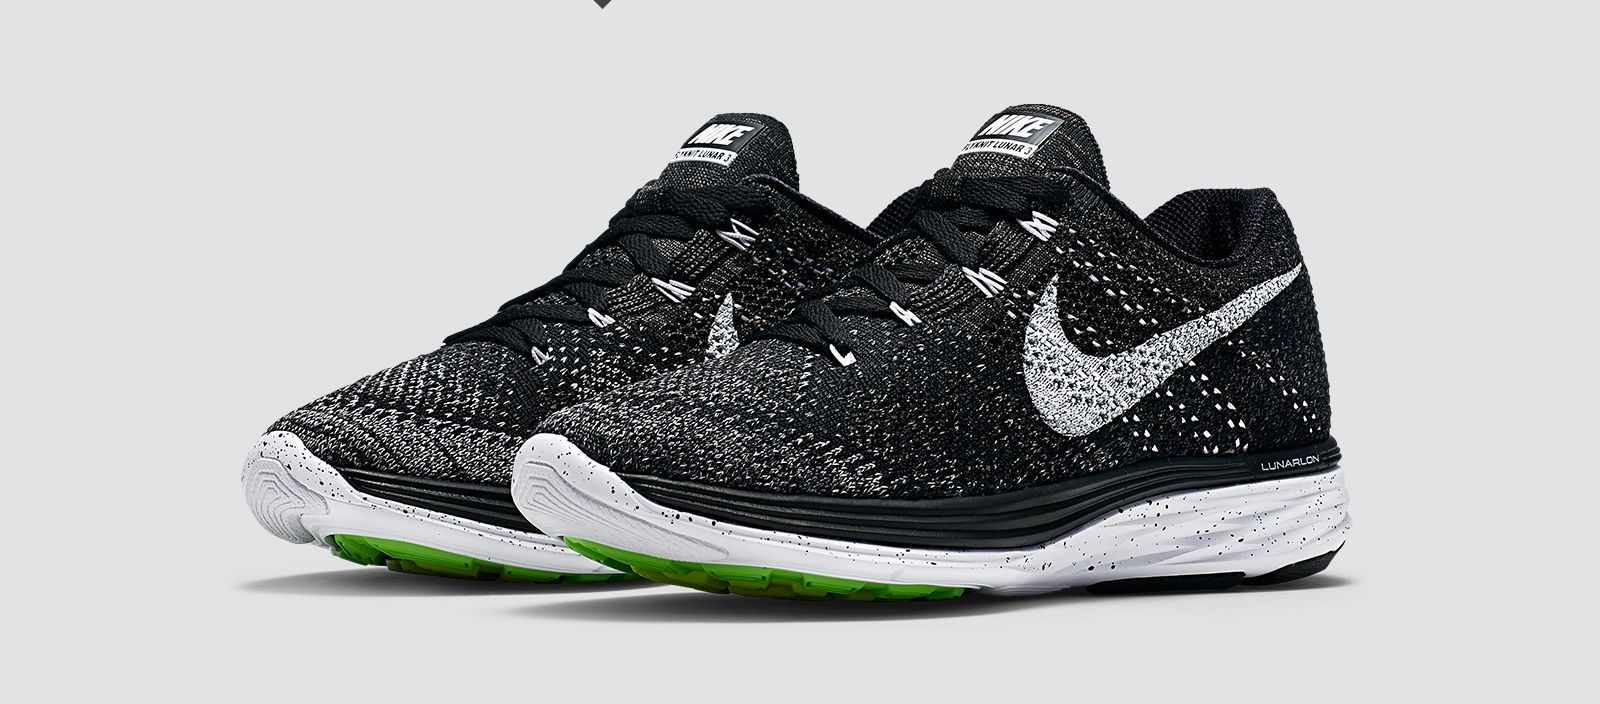 1618924d0cc8b ... coupon for designed for supportive comfort nike flyknit lunar offers  lightweight cushioned comfort to help keep